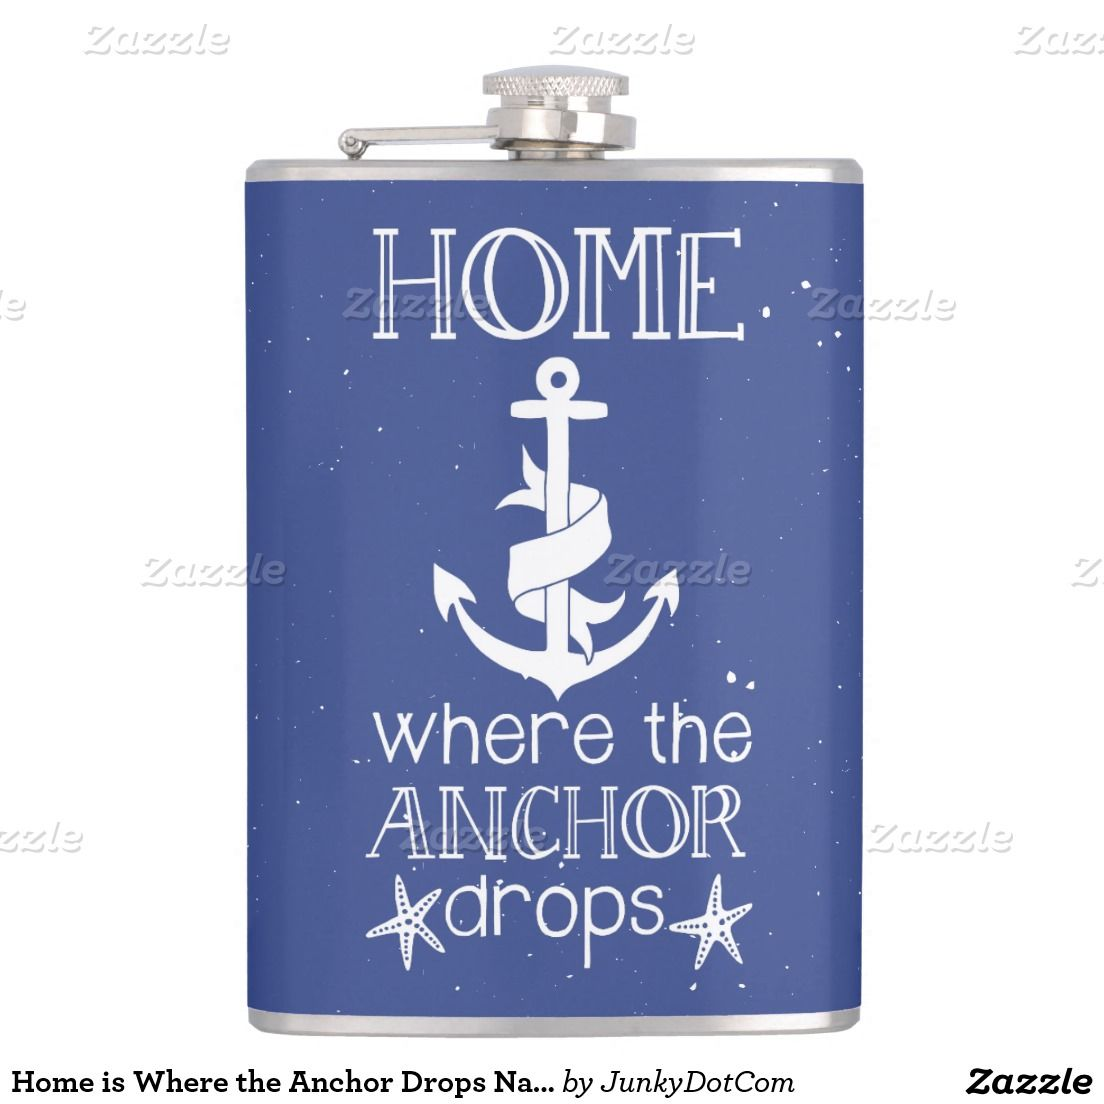 Home is Where the Anchor Drops Nautical Quote Flasks - Dec 9